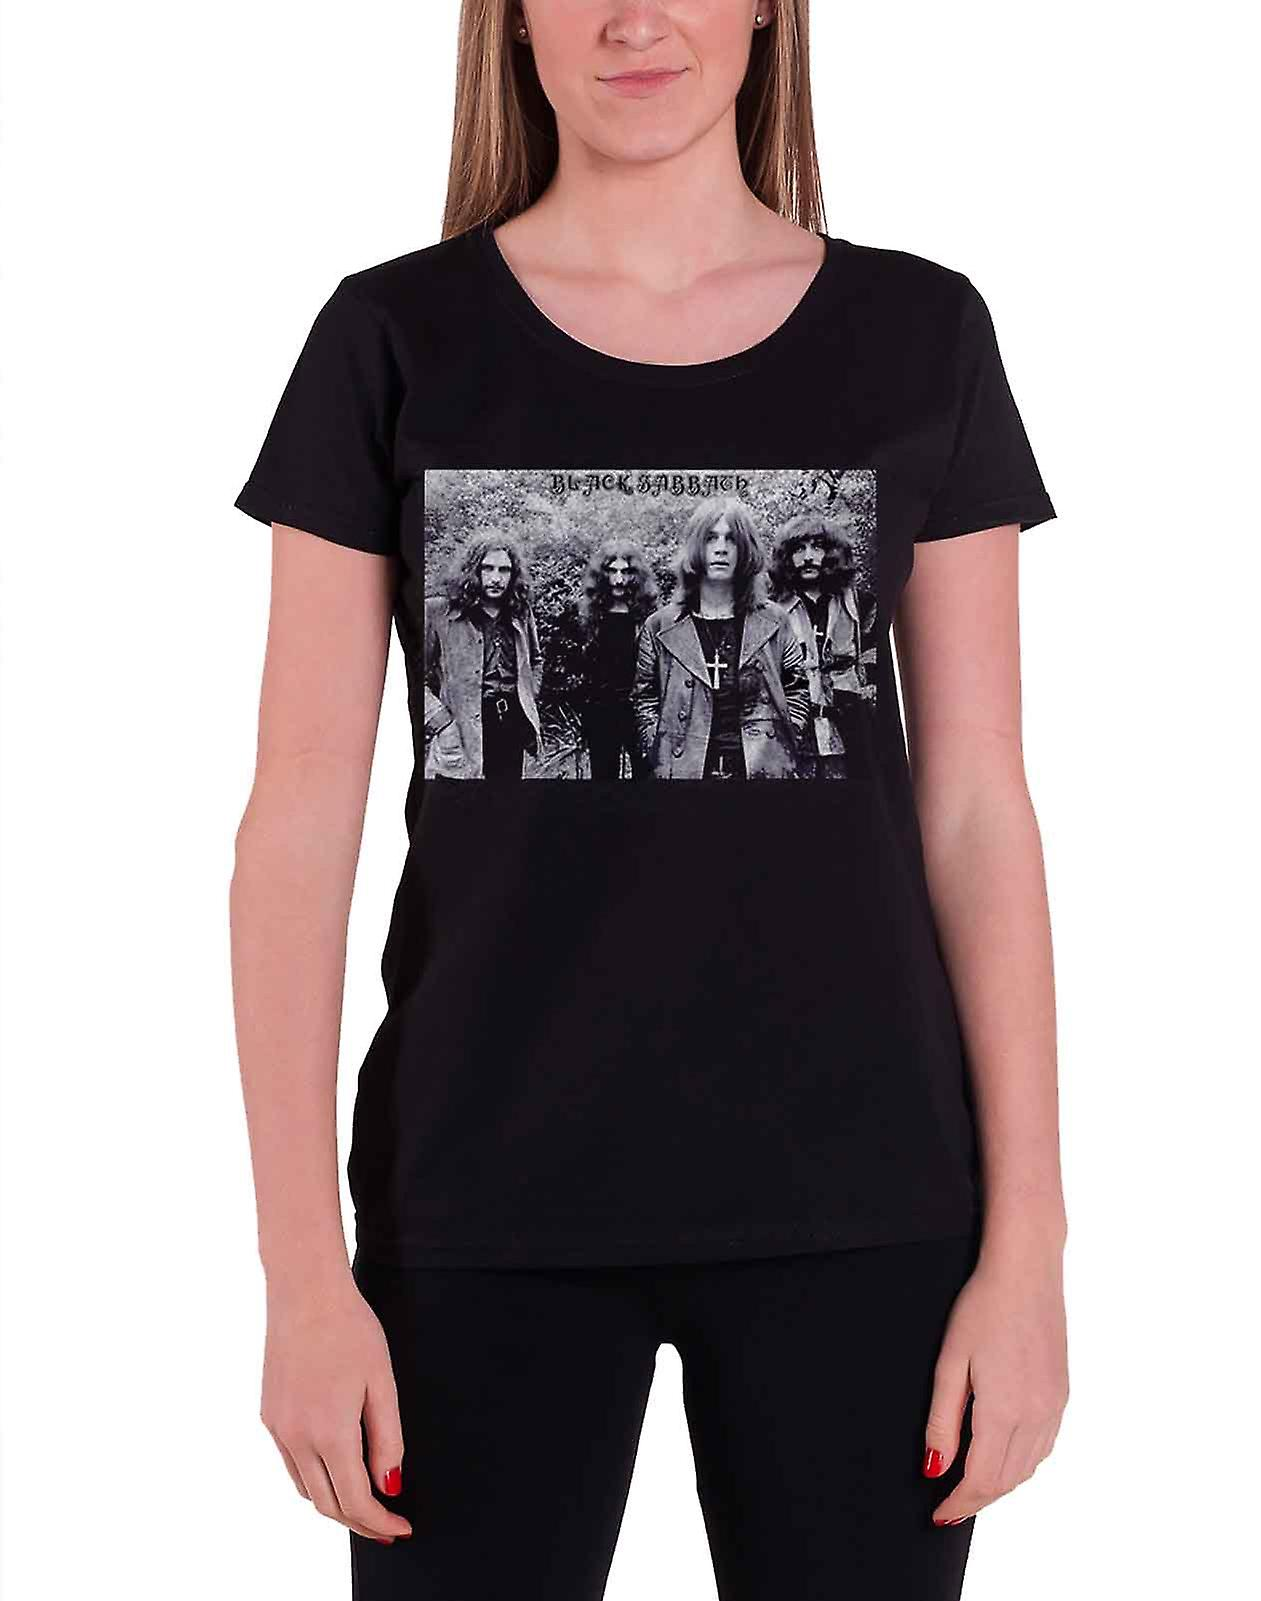 Black Sabbath T Shirt Group Shot vintage new Official Womens Skinny Fit Black